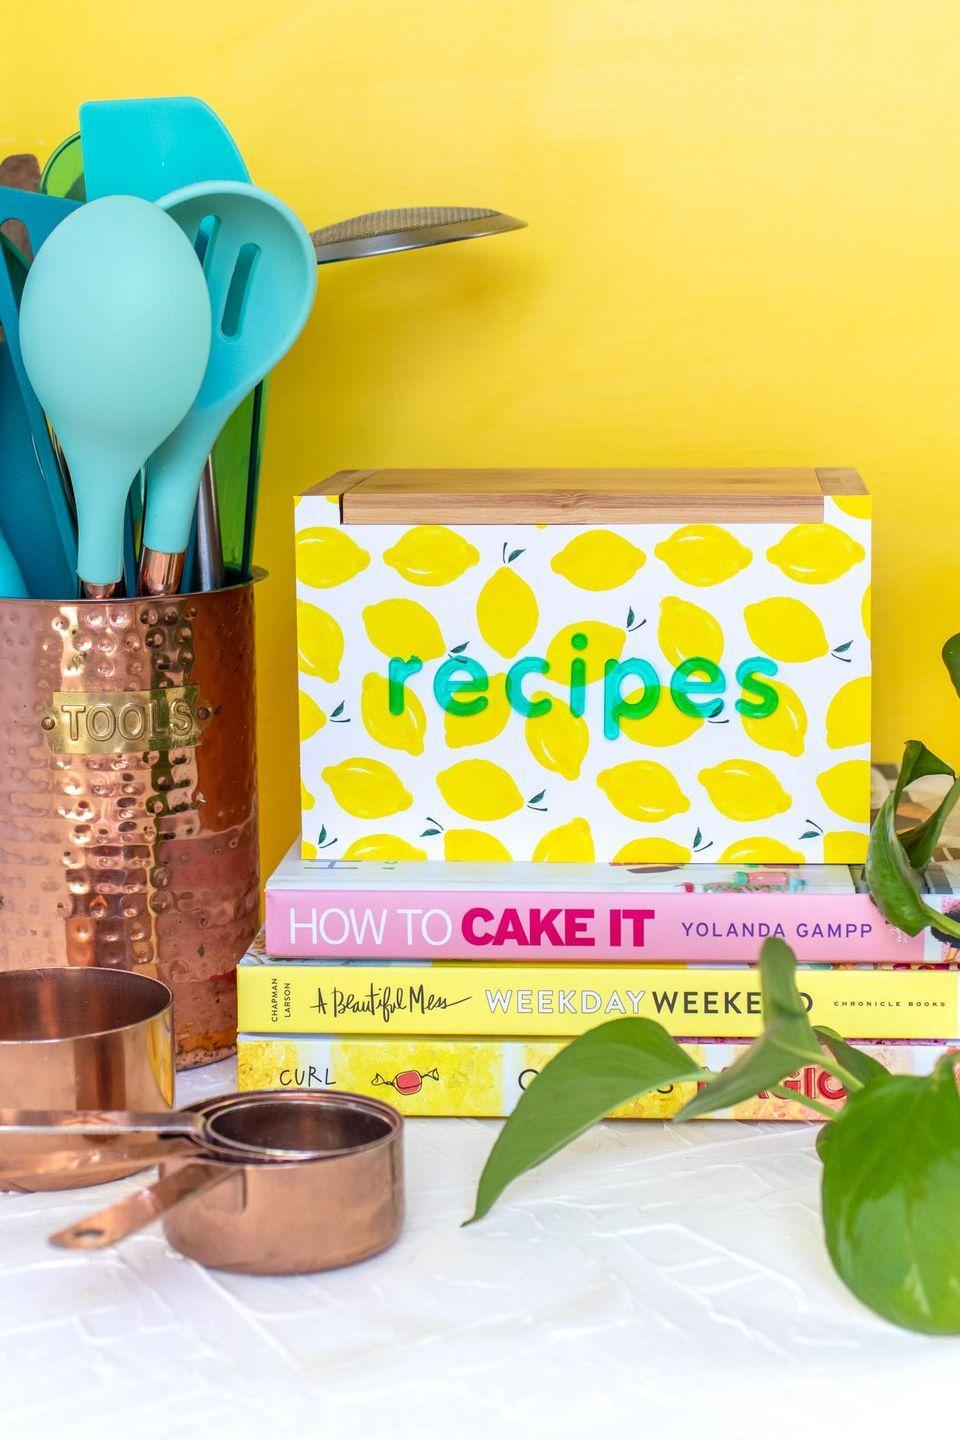 """<p>It may be what's on the inside that counts (decades of family recipes), but make the exterior of your mom's recipe box just as statement-worthy with peel-and-stick wallpaper. </p><p><em><a href=""""https://www.clubcrafted.com/recipe-box-makeover-wallpaper/"""" rel=""""nofollow noopener"""" target=""""_blank"""" data-ylk=""""slk:Get the tutorial at Club Crafted »"""" class=""""link rapid-noclick-resp"""">Get the tutorial at Club Crafted »</a></em> </p>"""